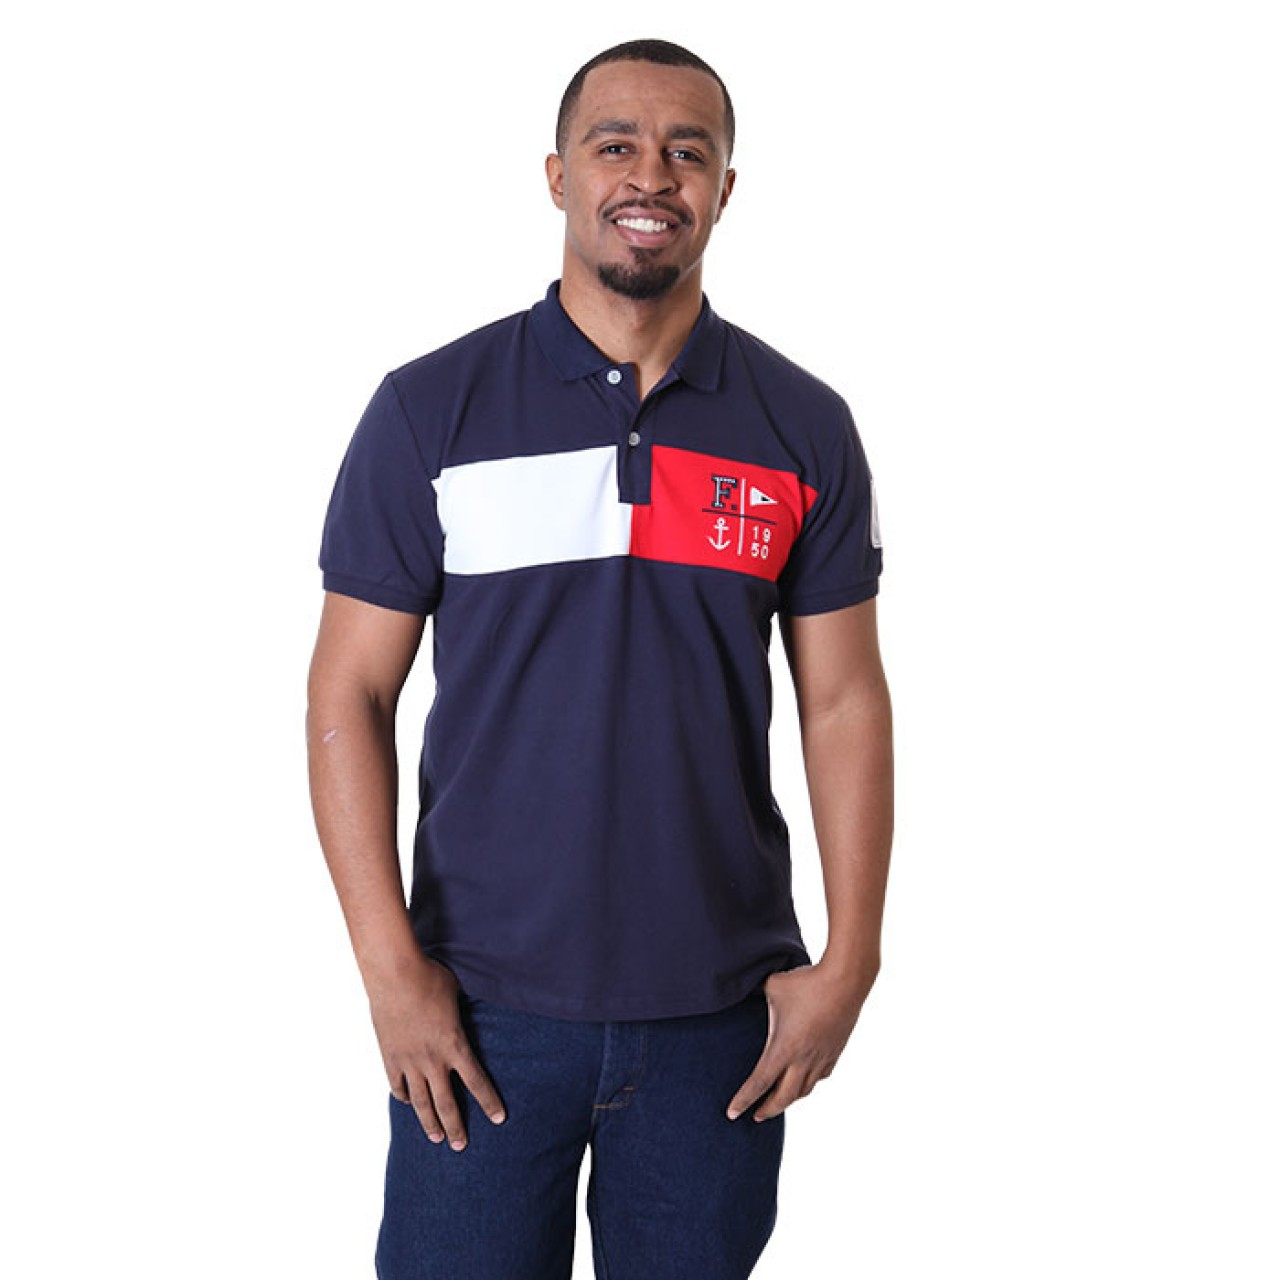 Men's Navy Blue Collared Neck Tees With Designer Patch At Chest